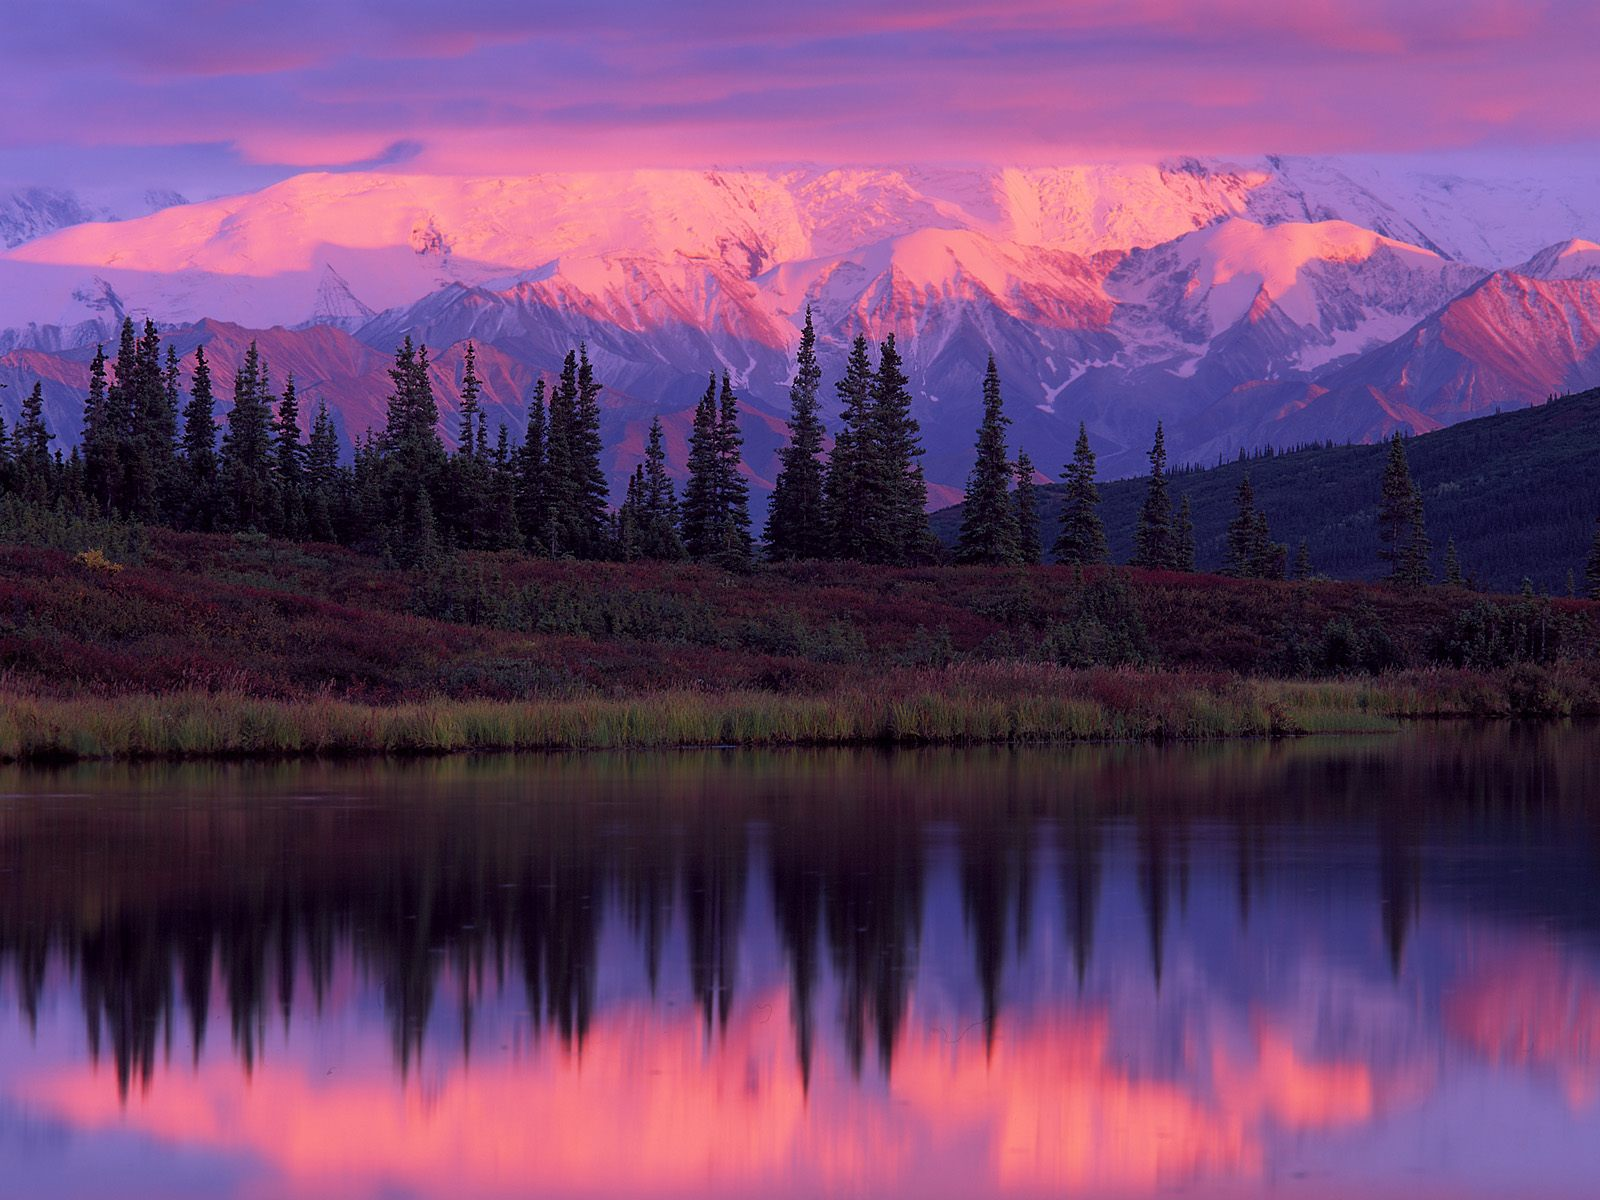 Lake And Alaska Range At Sunset Denali National Park Wallpaper 1600x1200